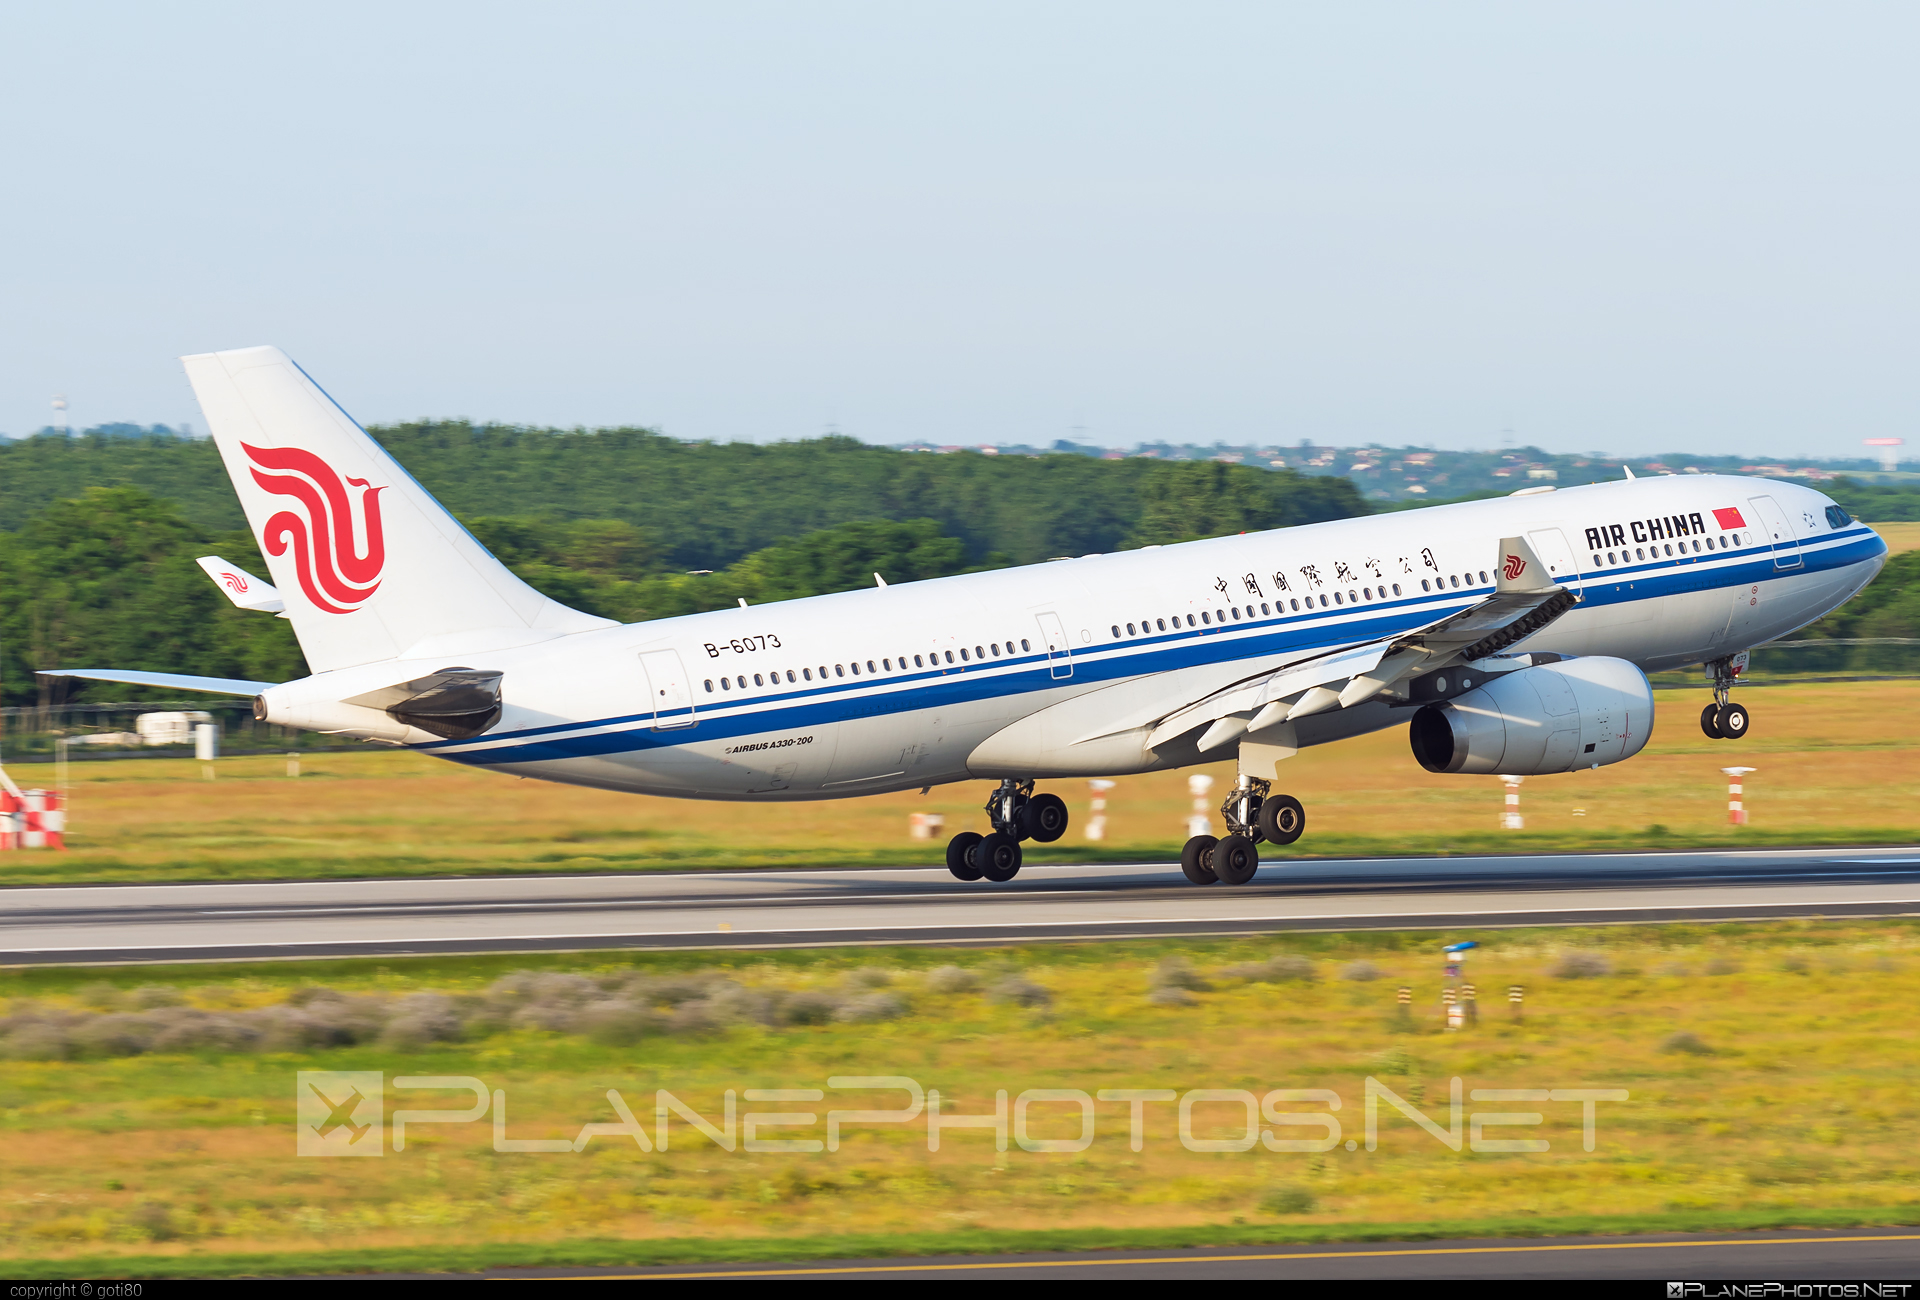 Airbus A330-243 - B-6073 operated by Air China #a330 #a330family #airbus #airbus330 #airchina